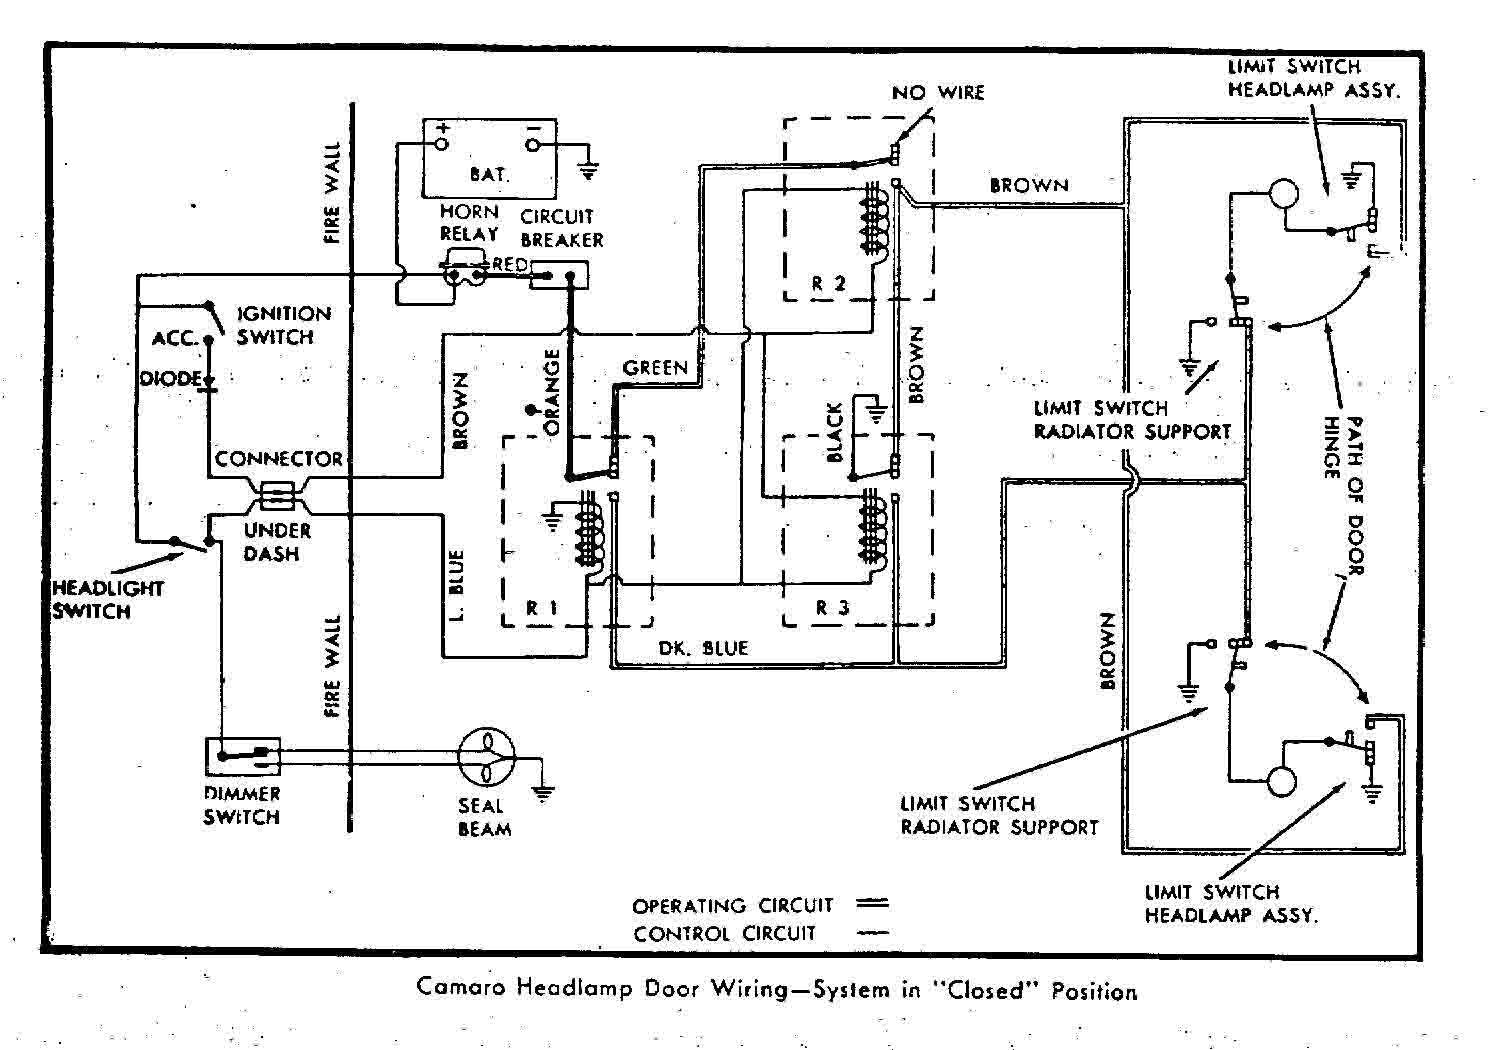 hight resolution of h4 wiring upgrade diagram 67 camaro wiring diagrams schemah4 wiring upgrade diagram 67 camaro simple wiring